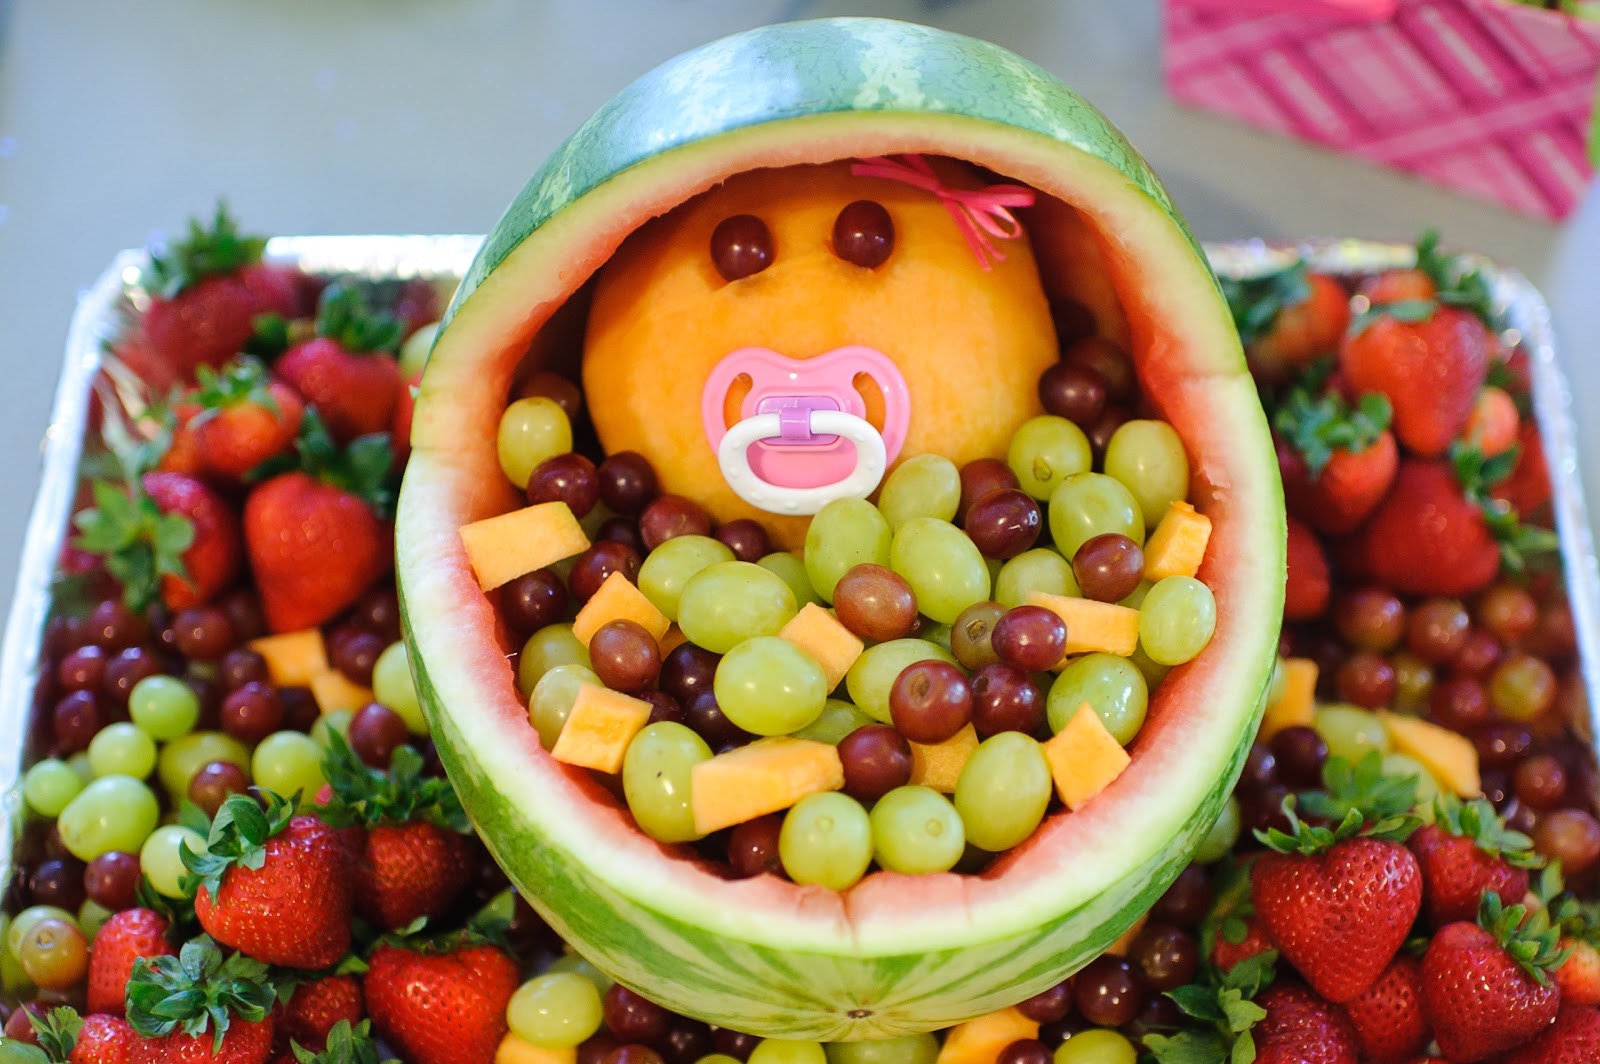 Fruit Bassinet   A Real Hit At The Shower And So Much Fun To Make. For The  Full Instructions Click HERE.